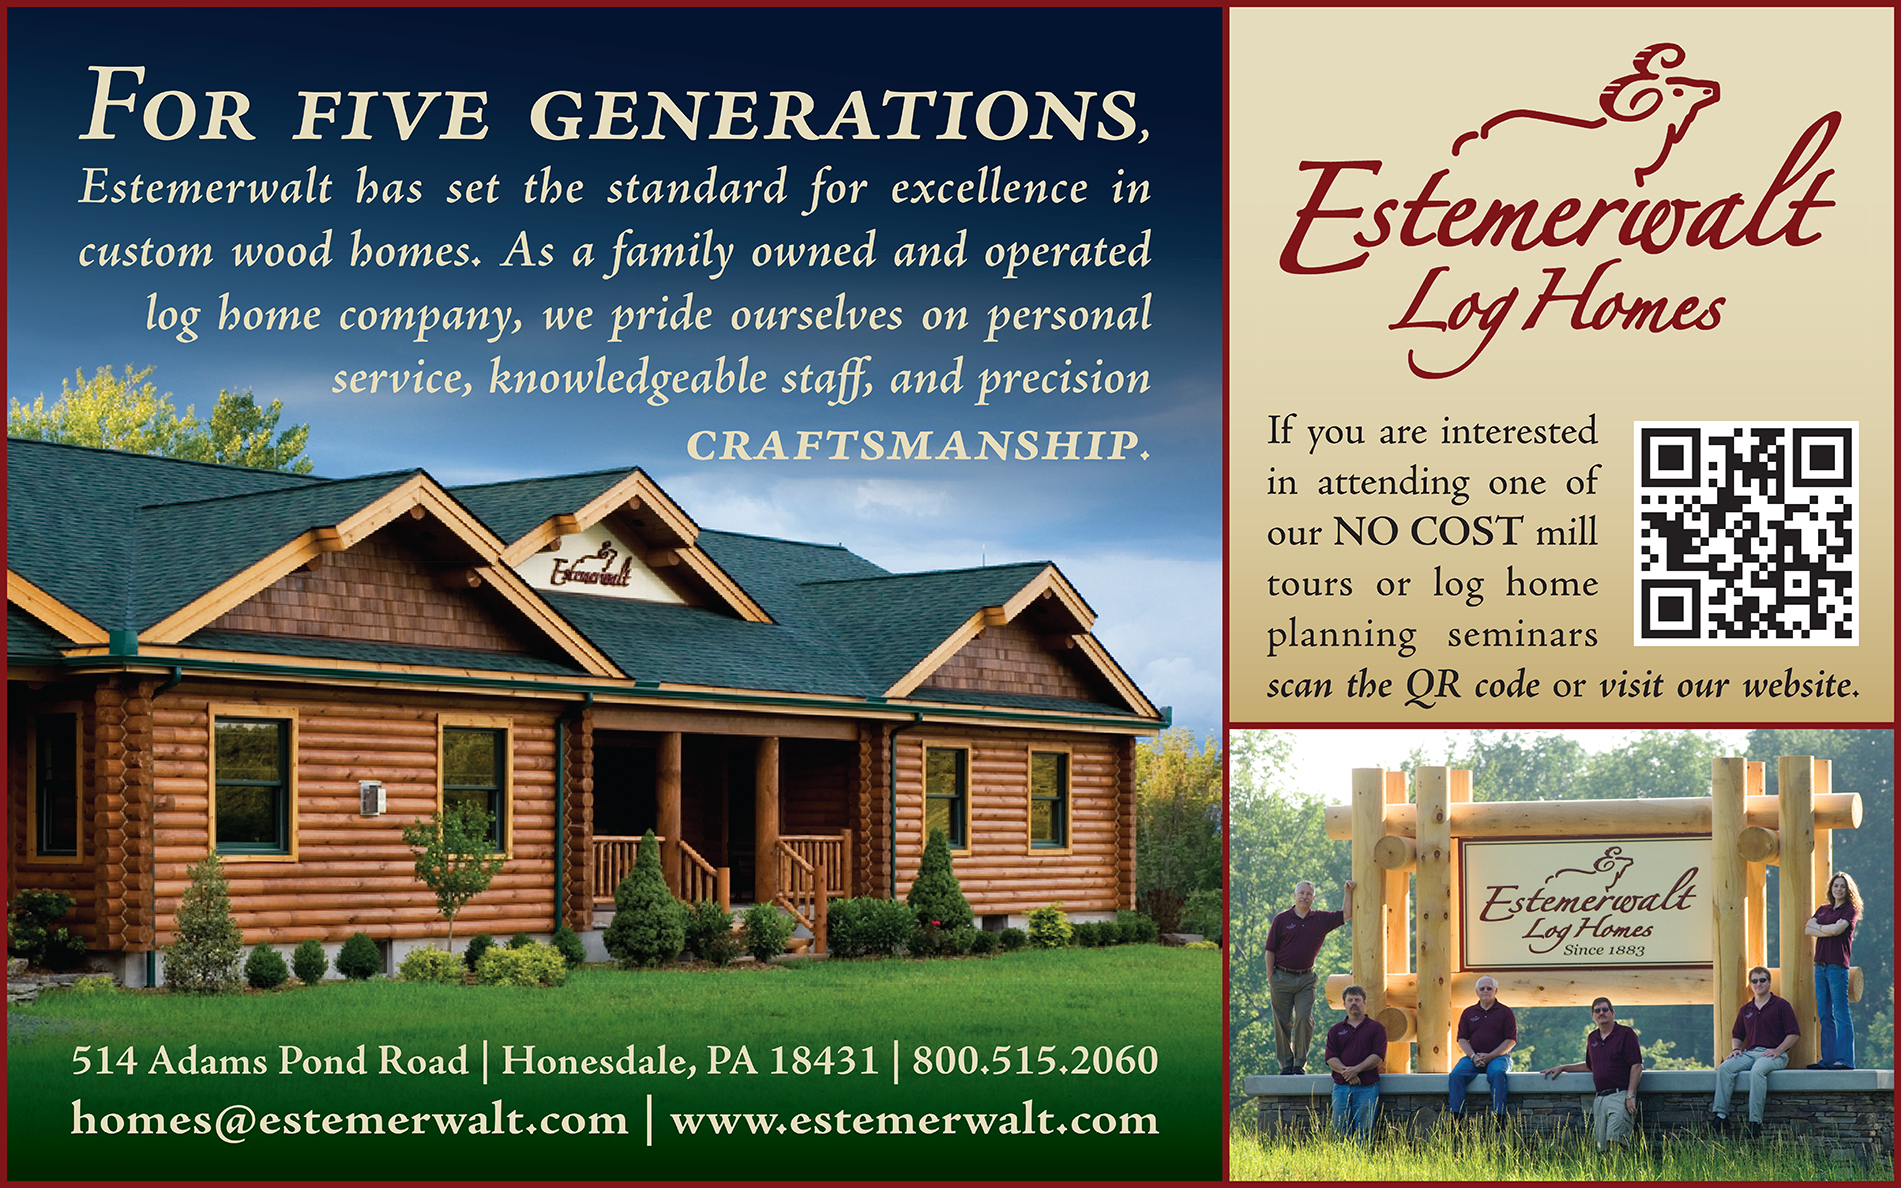 Estemerwalt Log Homes Ad